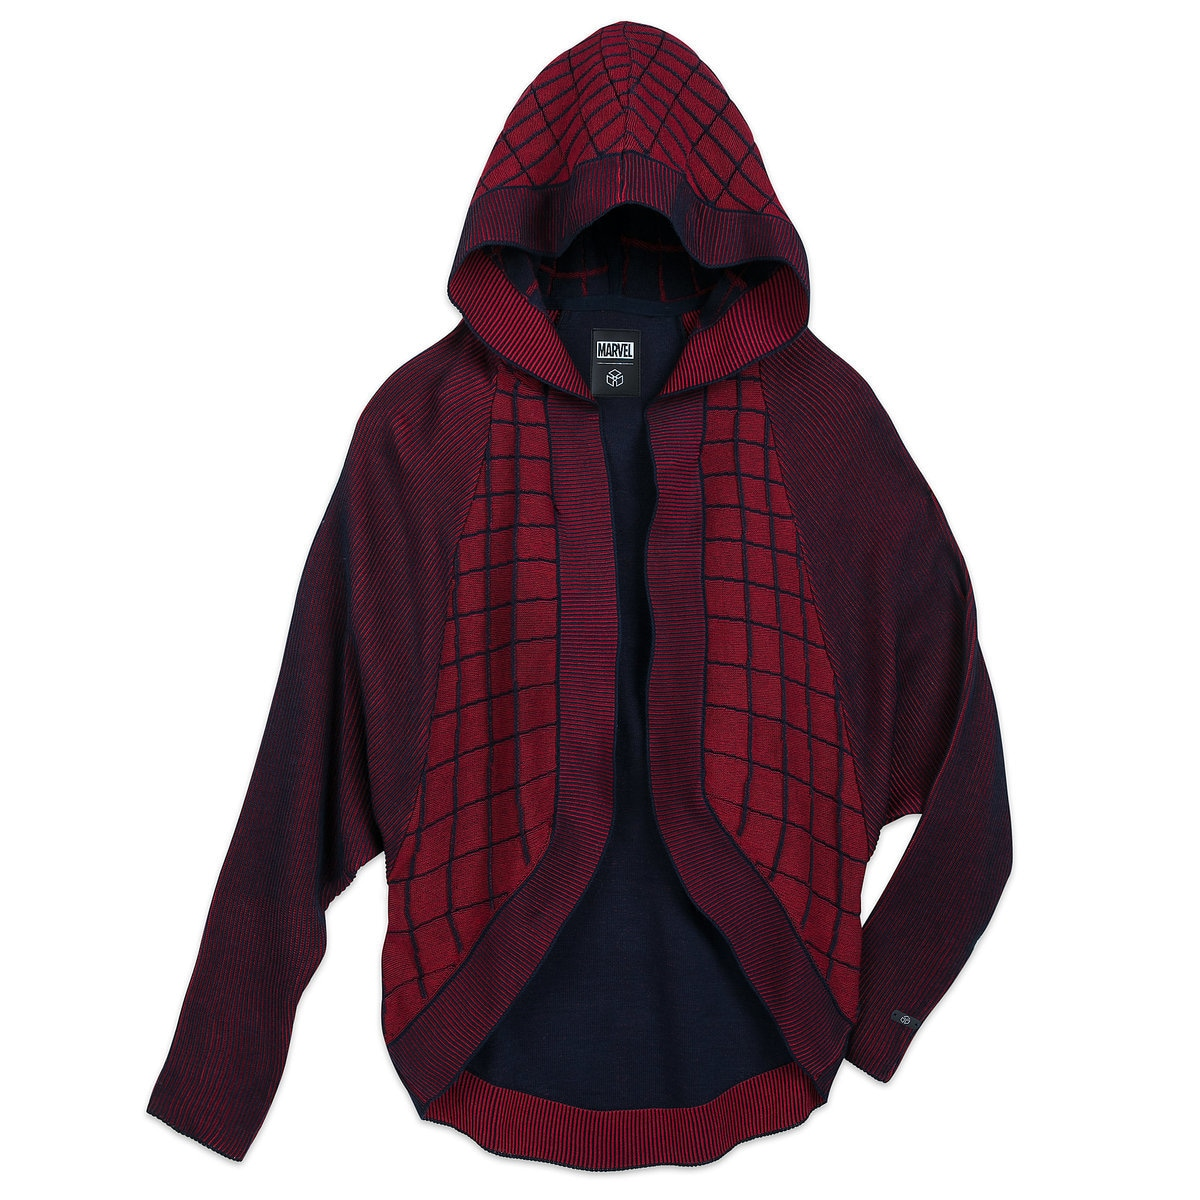 1a0bfba11 Product Image of Spider-Man Cardigan for Women by Musterbrand # 1